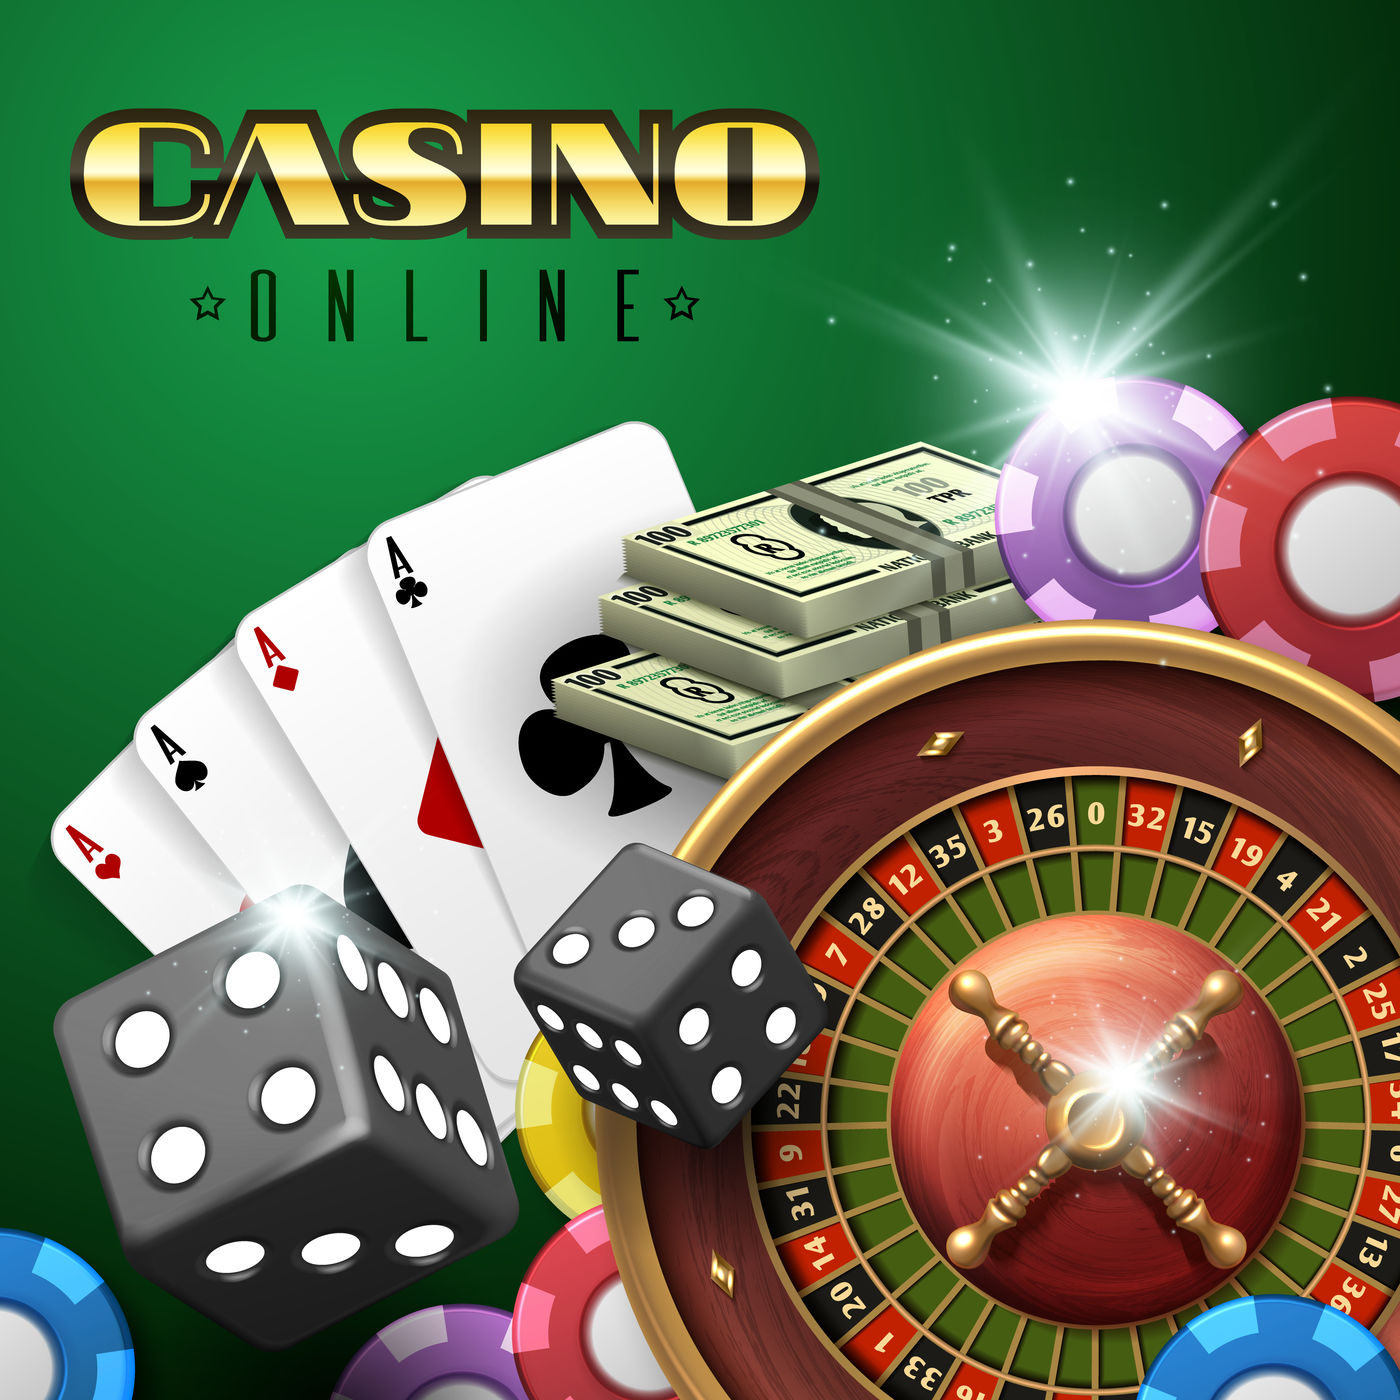 deutsche online casinos 2020